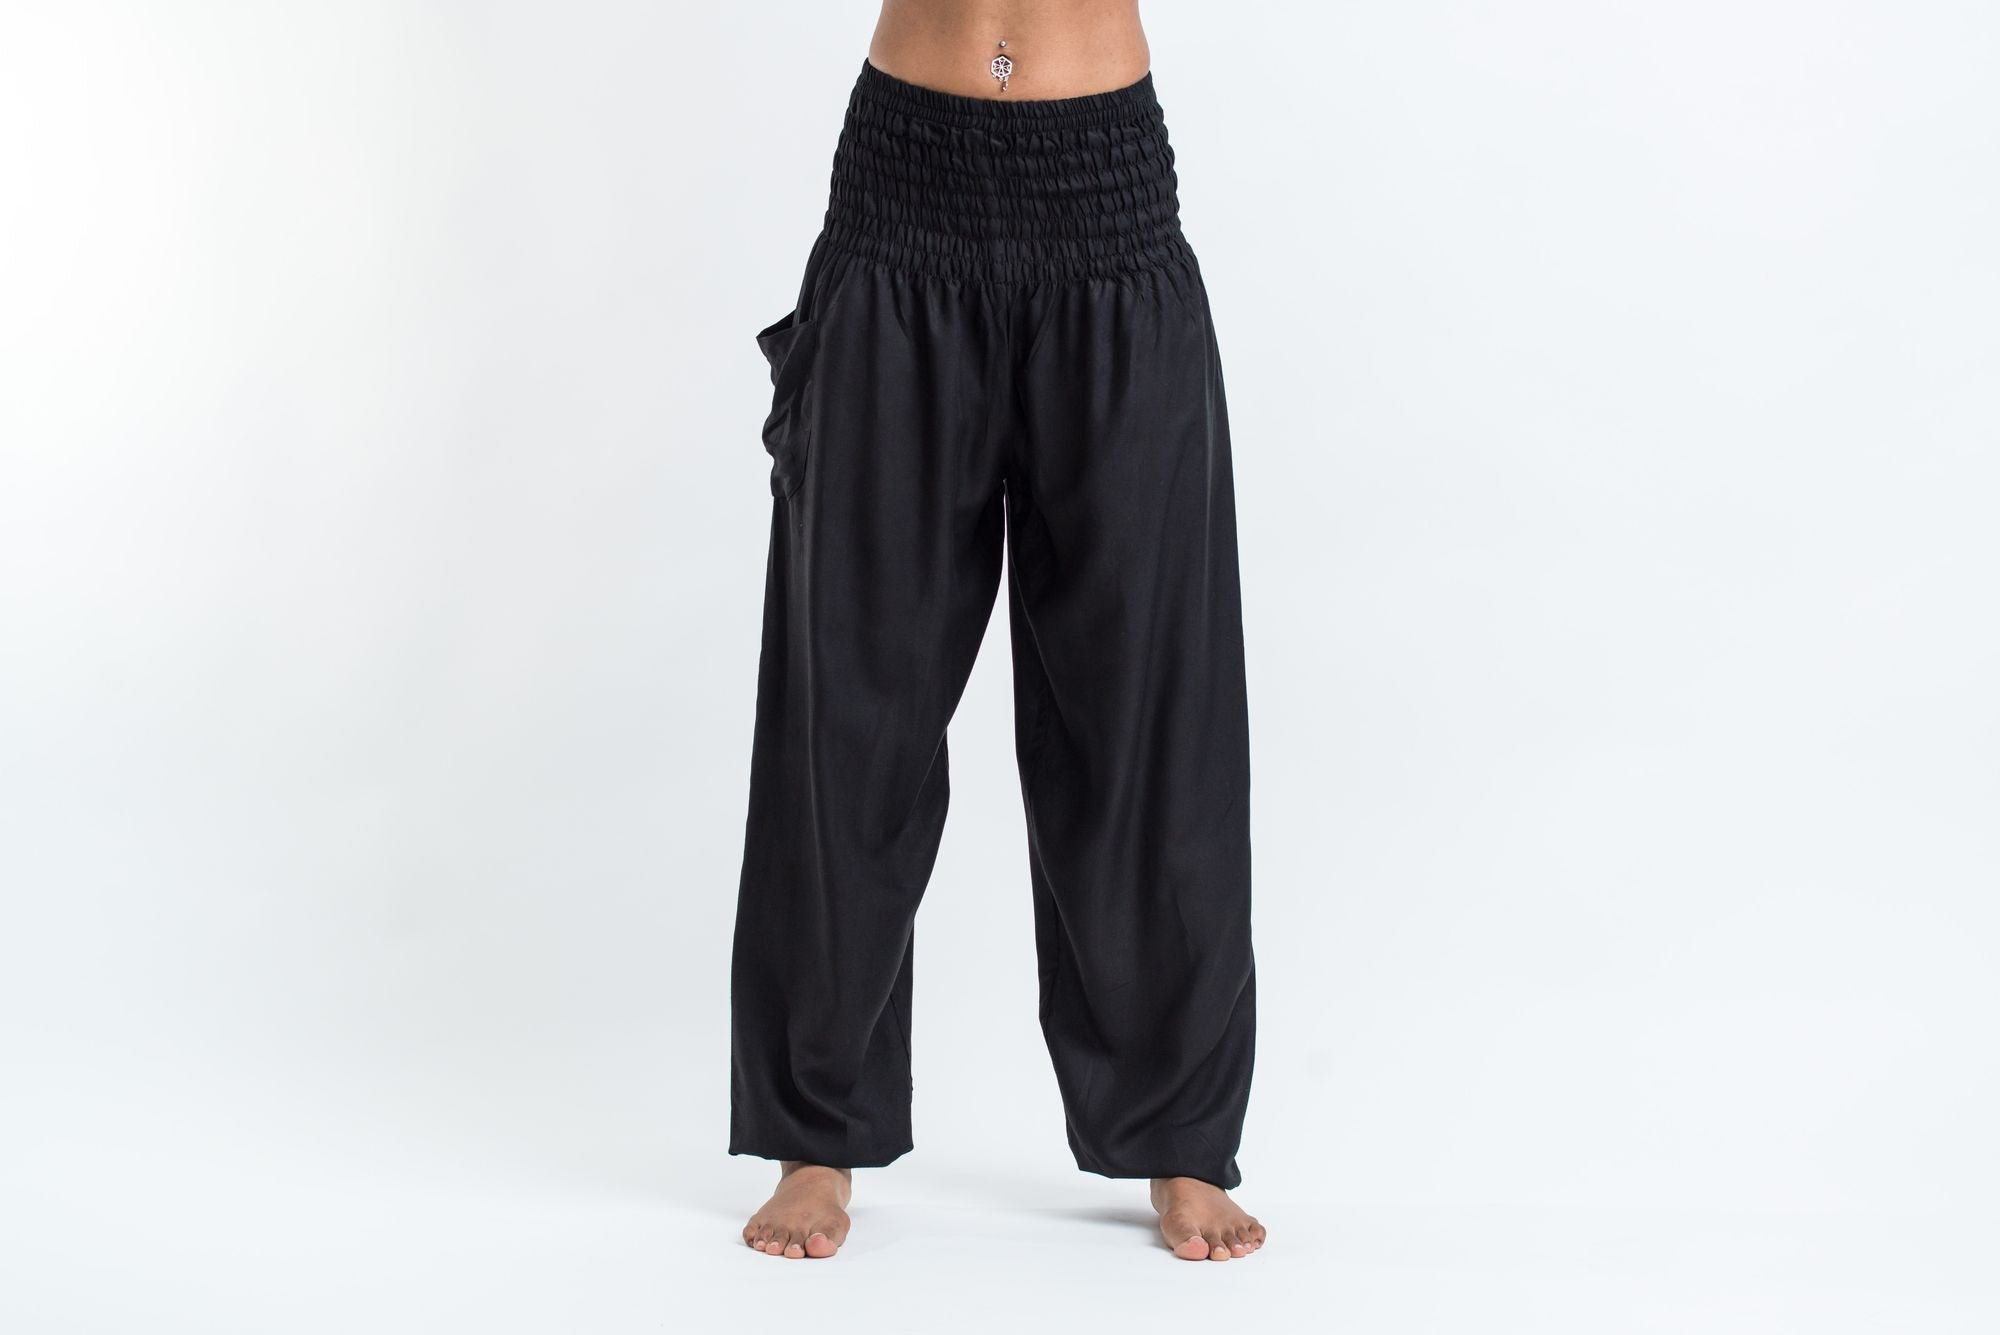 Wonderful Solid Color Womenu0026#39;s Harem Pants In Black